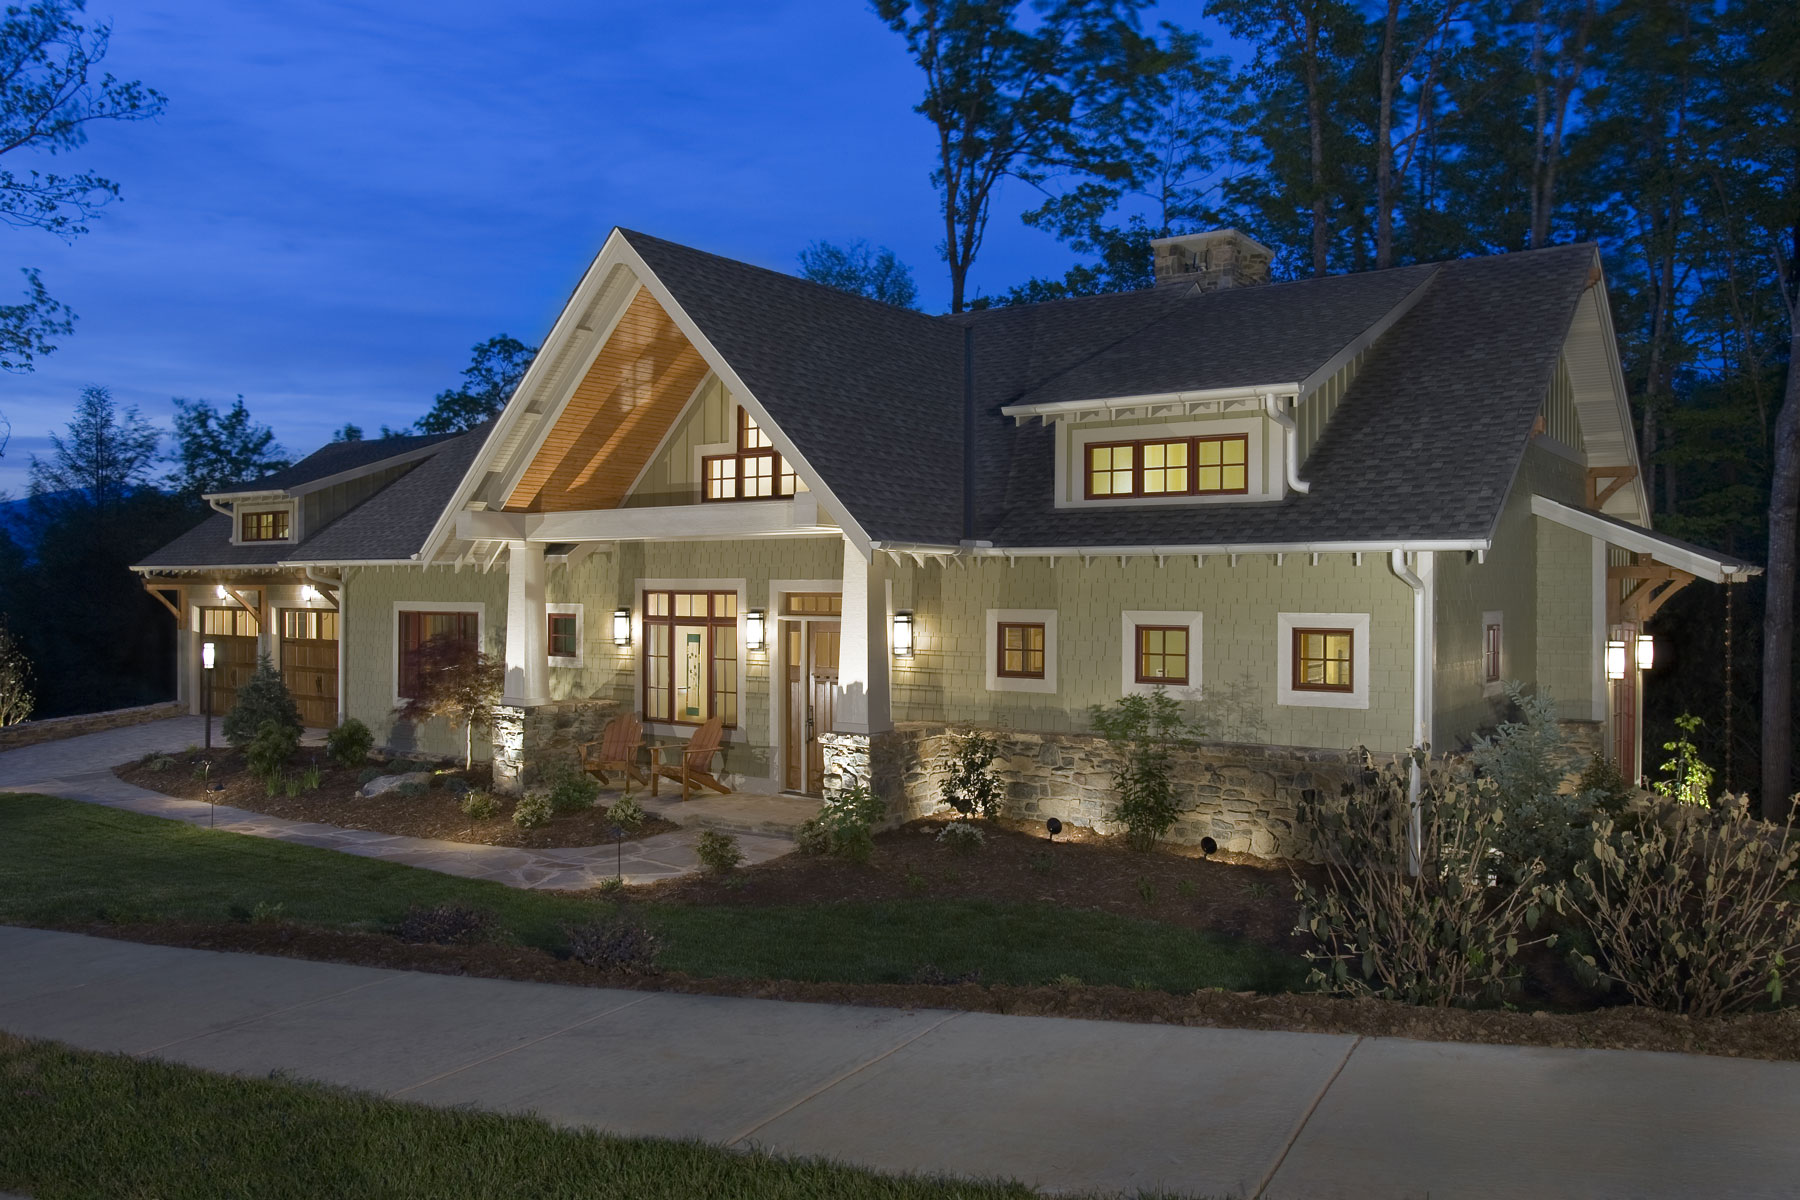 Front Elevation at Night of the Sustainable Living Craftsman